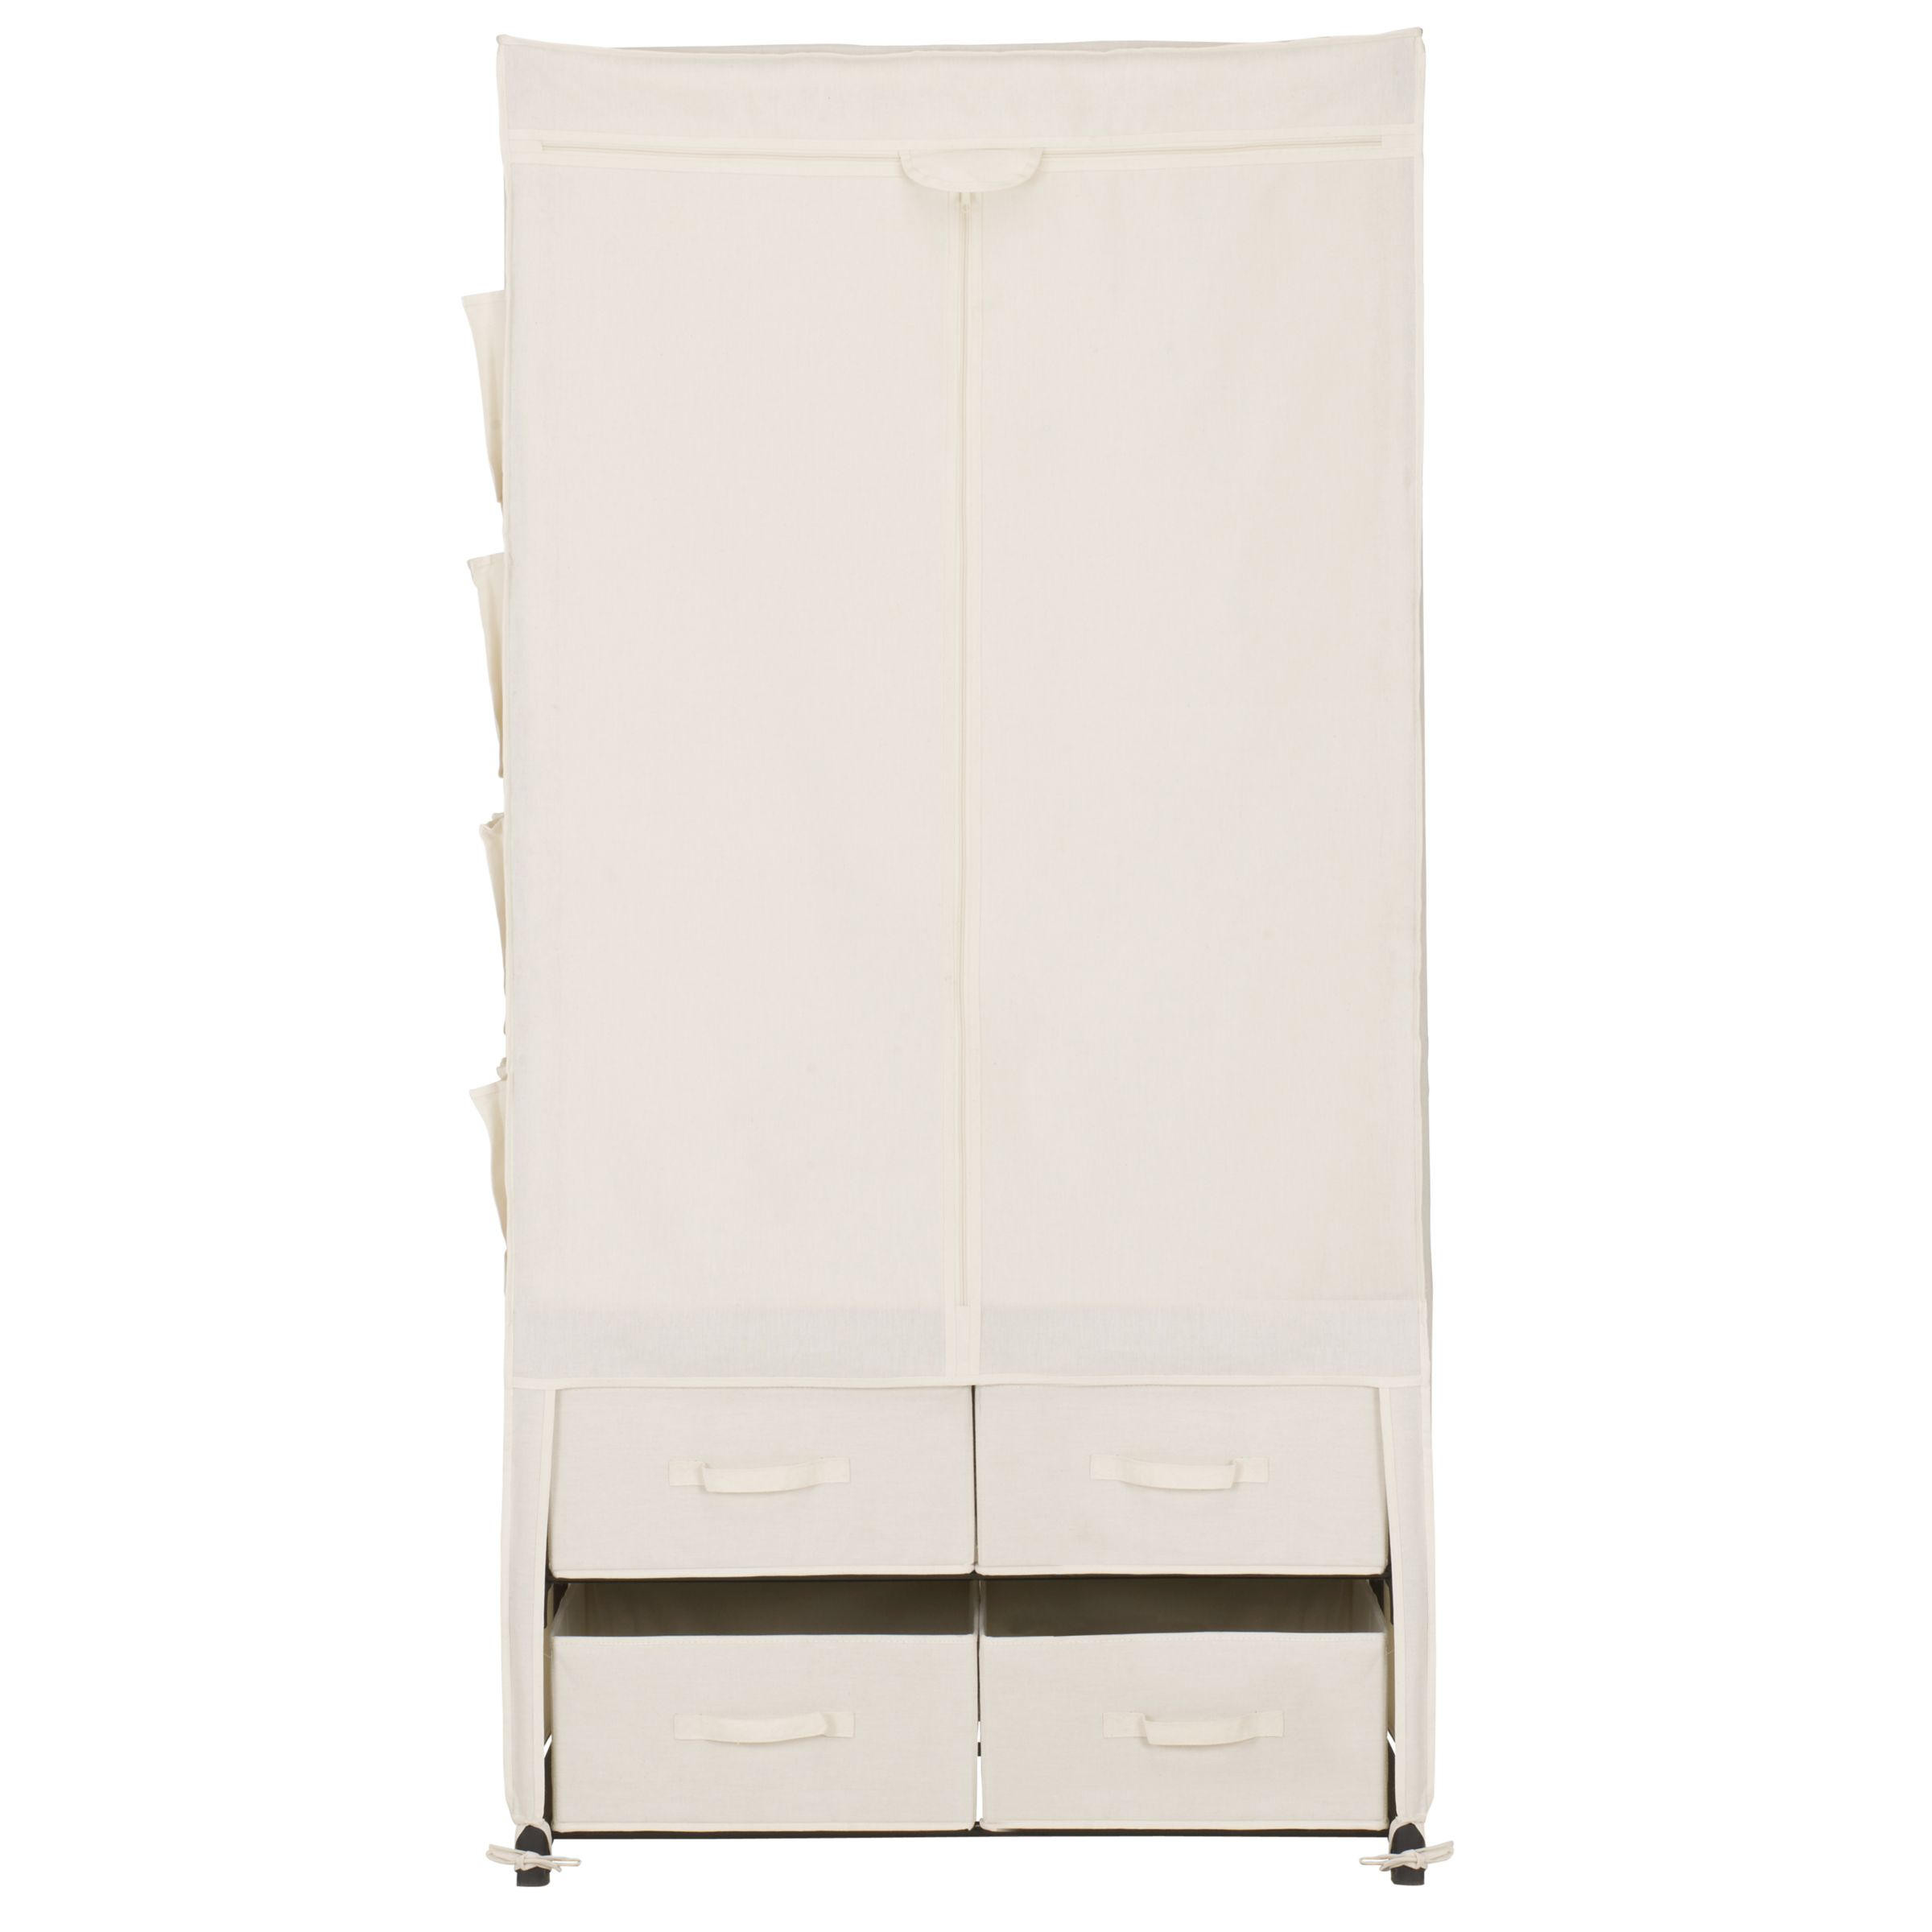 john lewis canvas wardrobe cream review compare prices. Black Bedroom Furniture Sets. Home Design Ideas